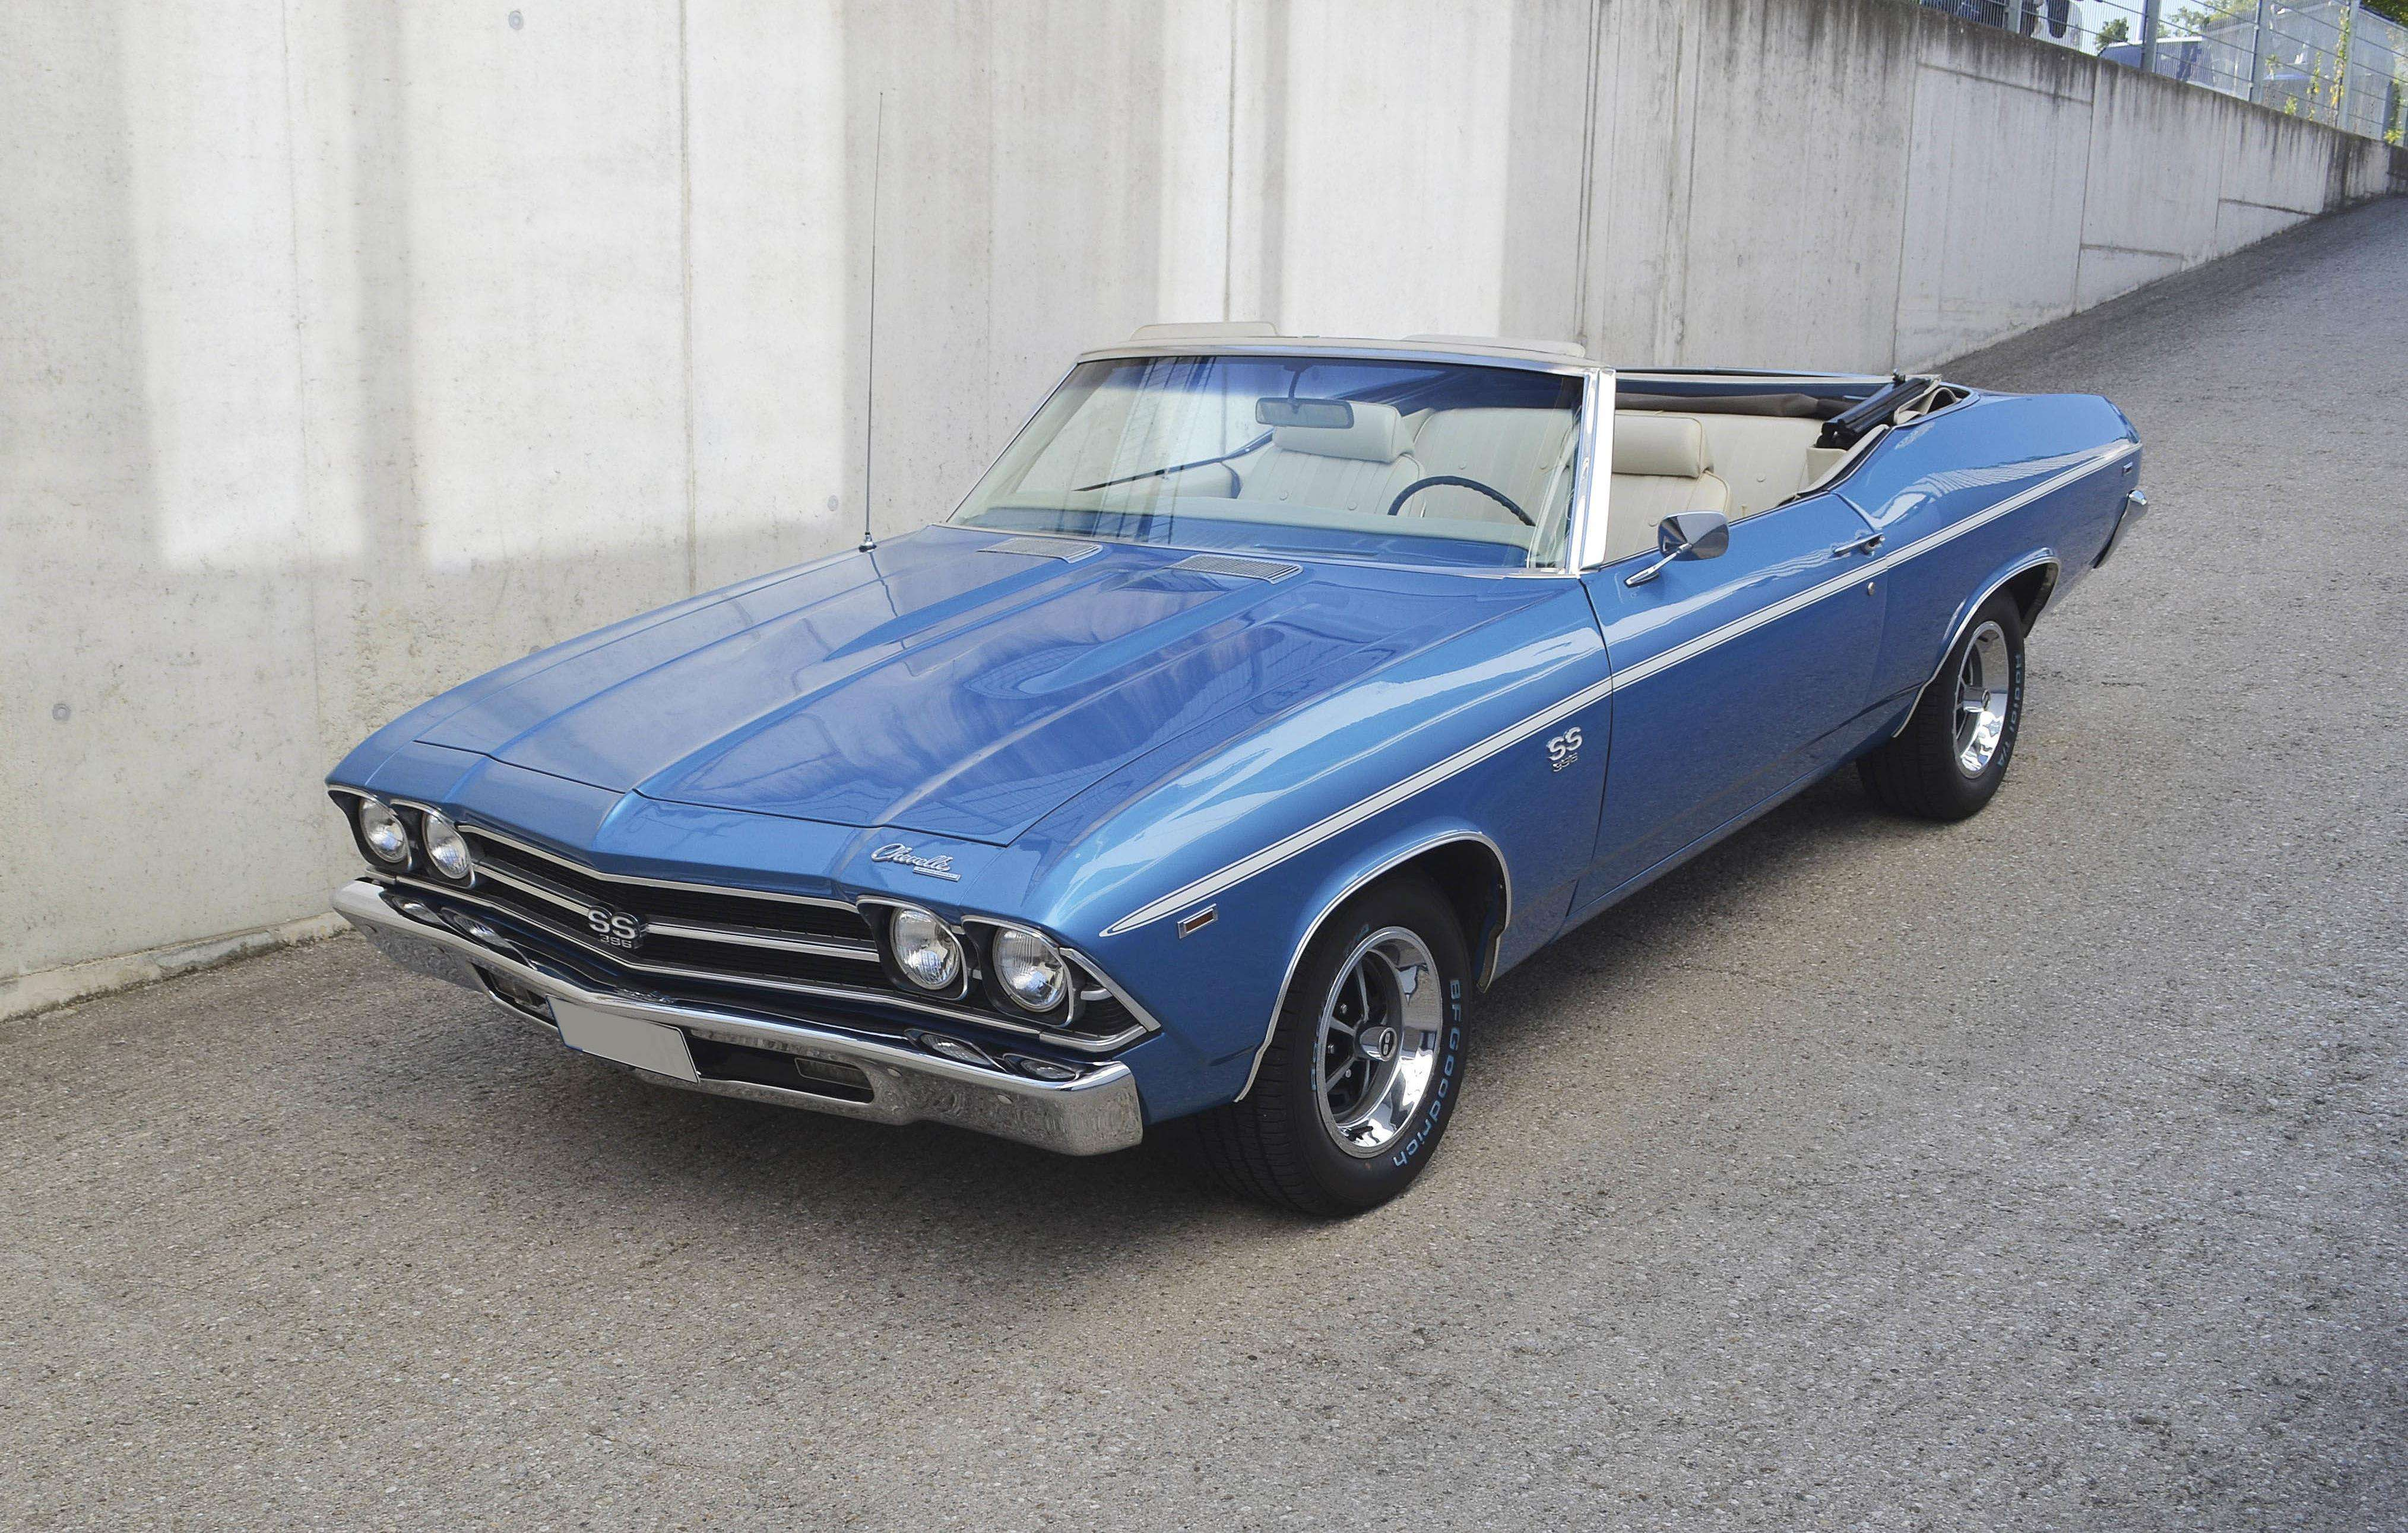 2016 Chevelle Ss >> 1969 Chevrolet Chevelle Ss Convertible 7 Litre Classic Cars